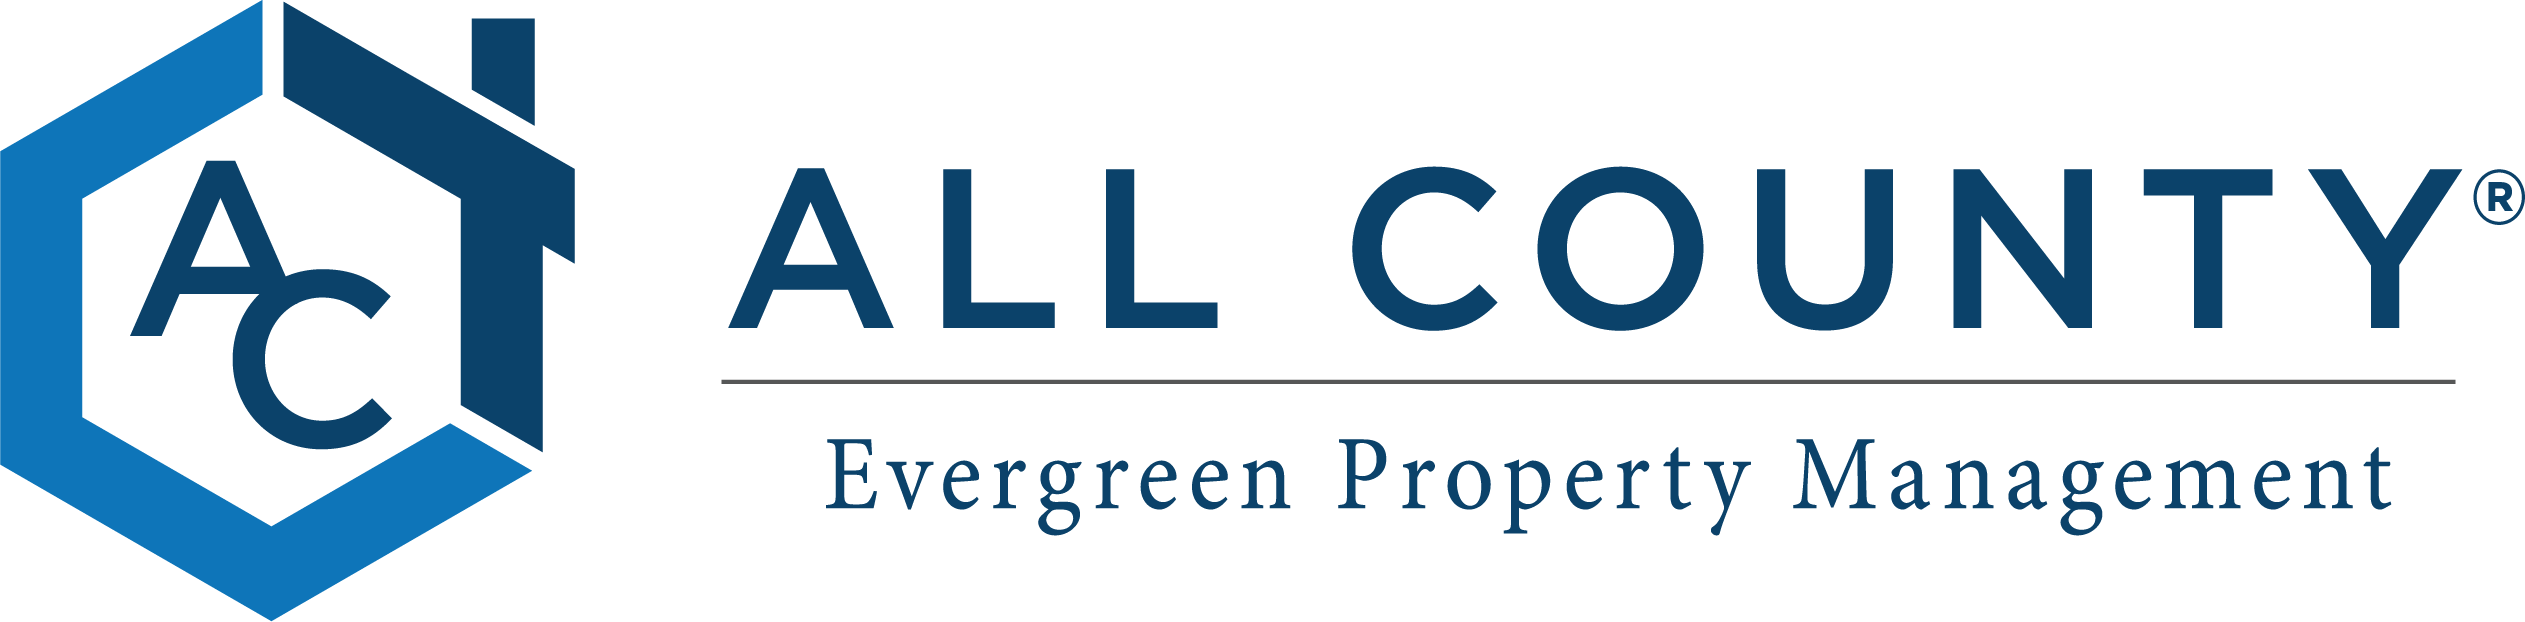 All County Evergreen Property Management